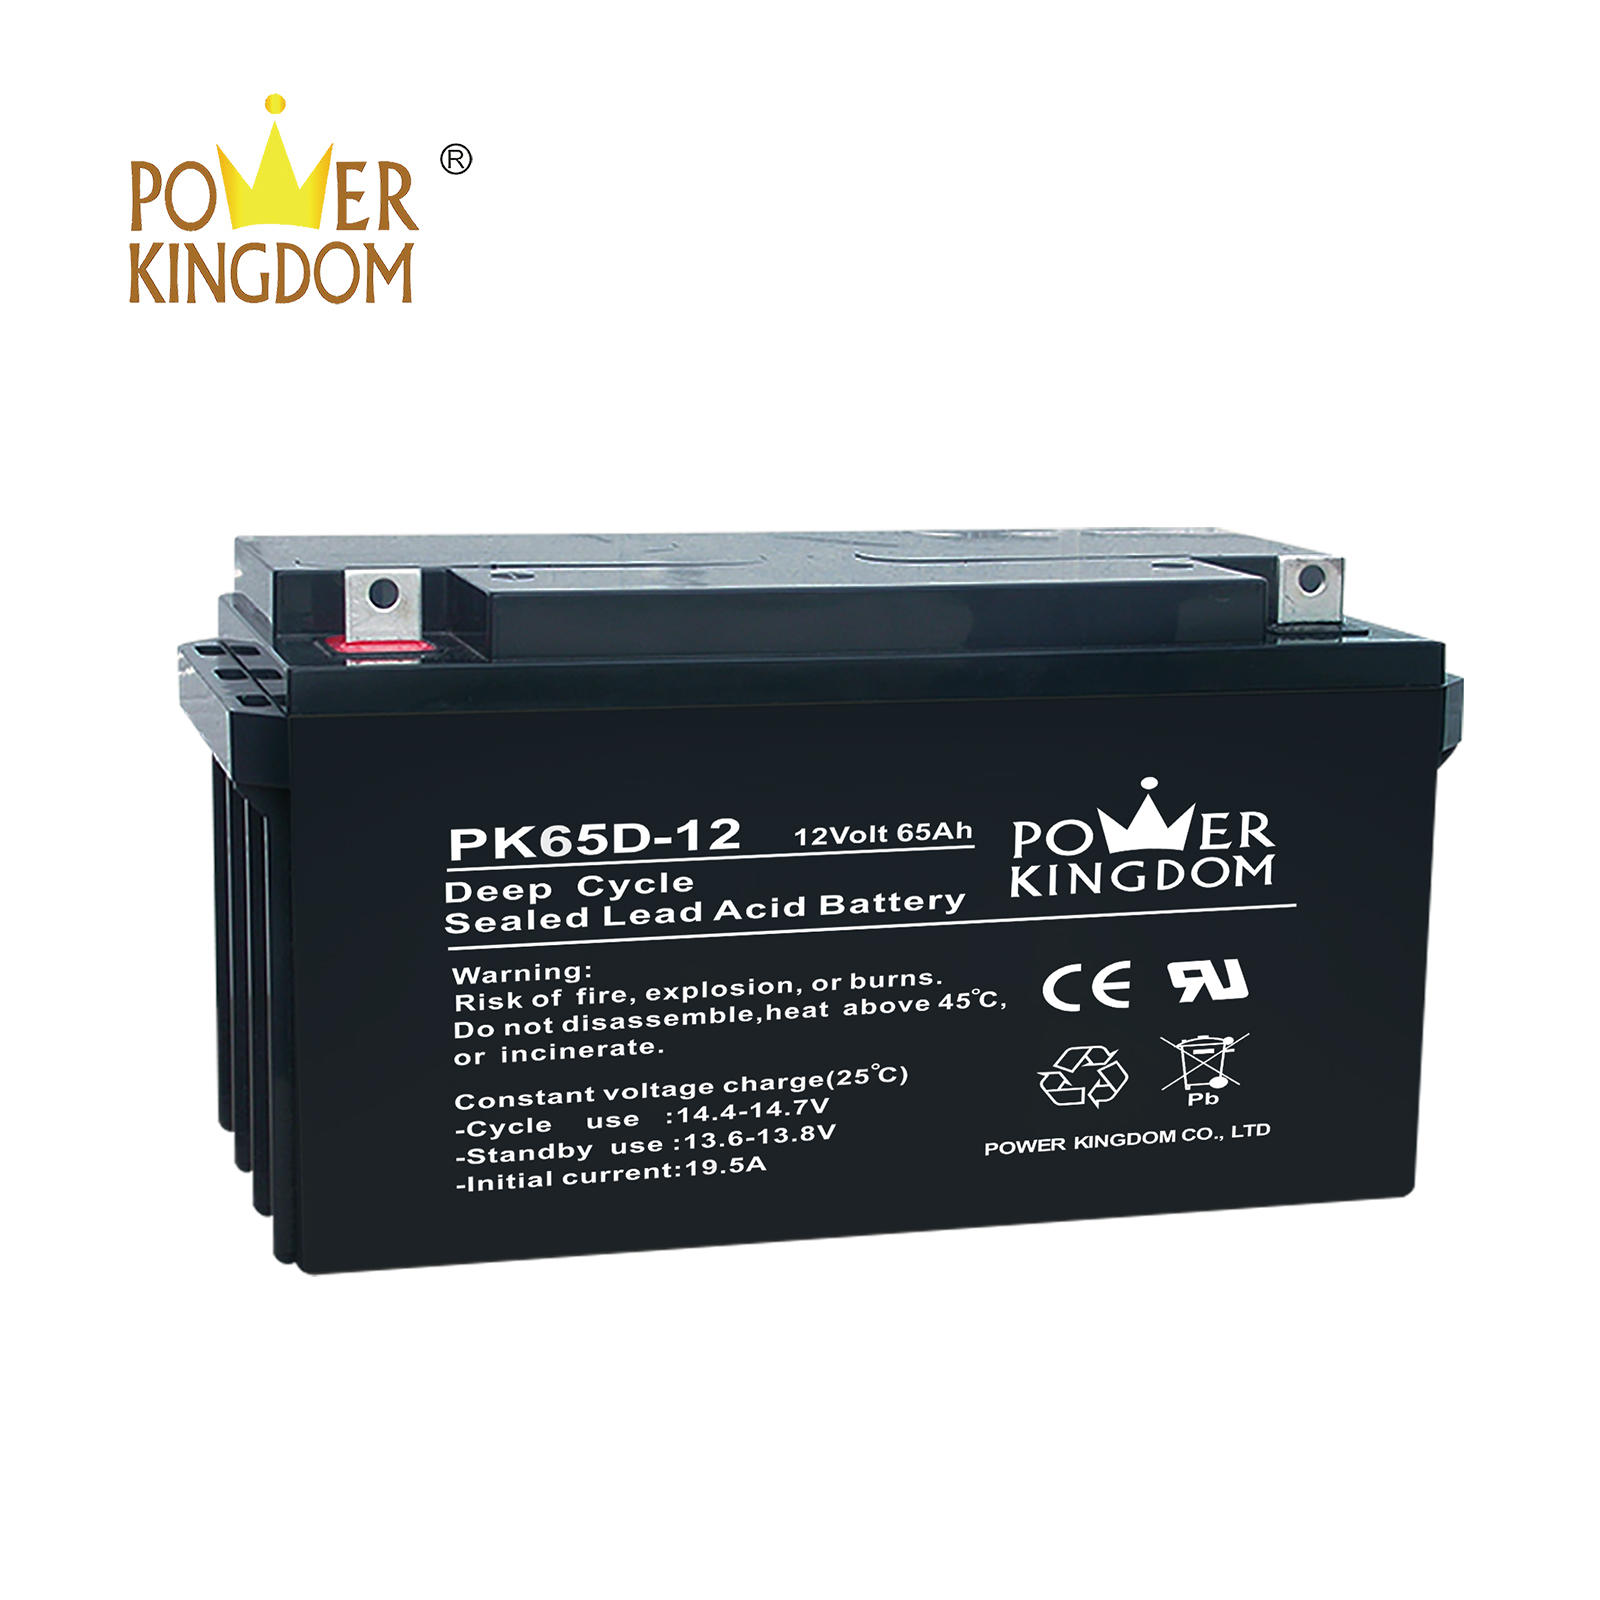 Power Kingdom 12v 65ah deep cycle GEL battery